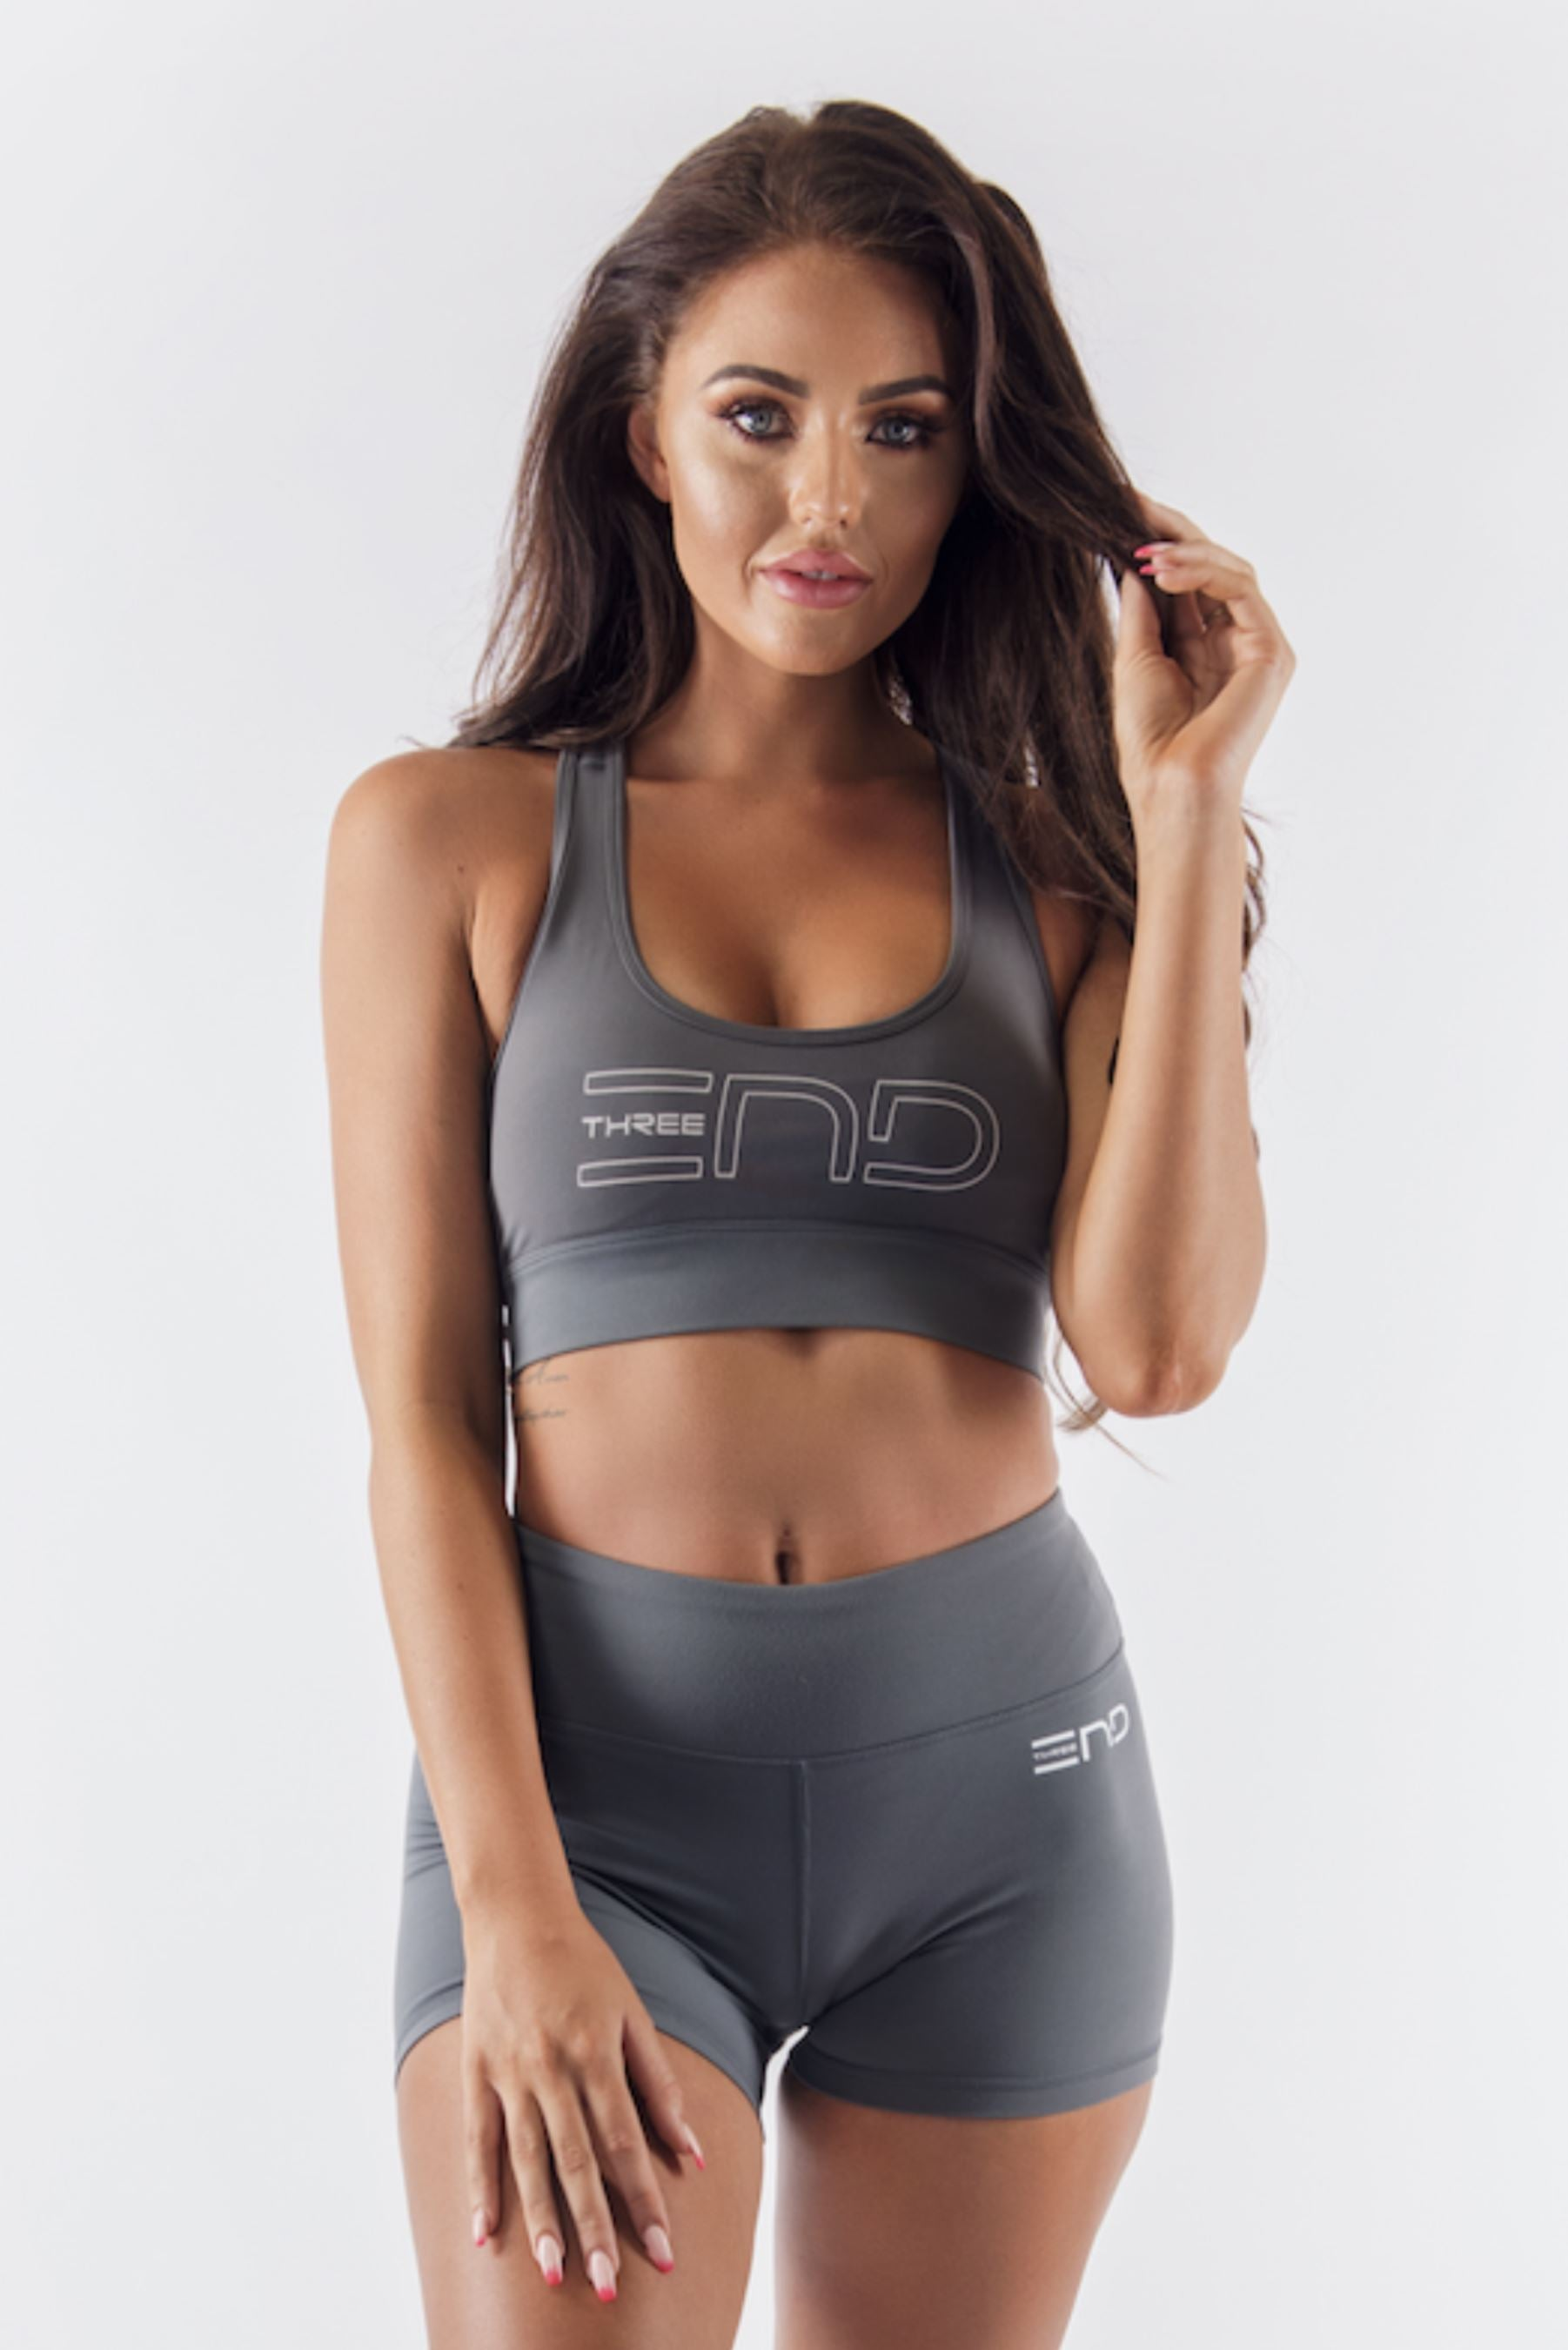 Three End Hyped Sports Bra - Charcoal